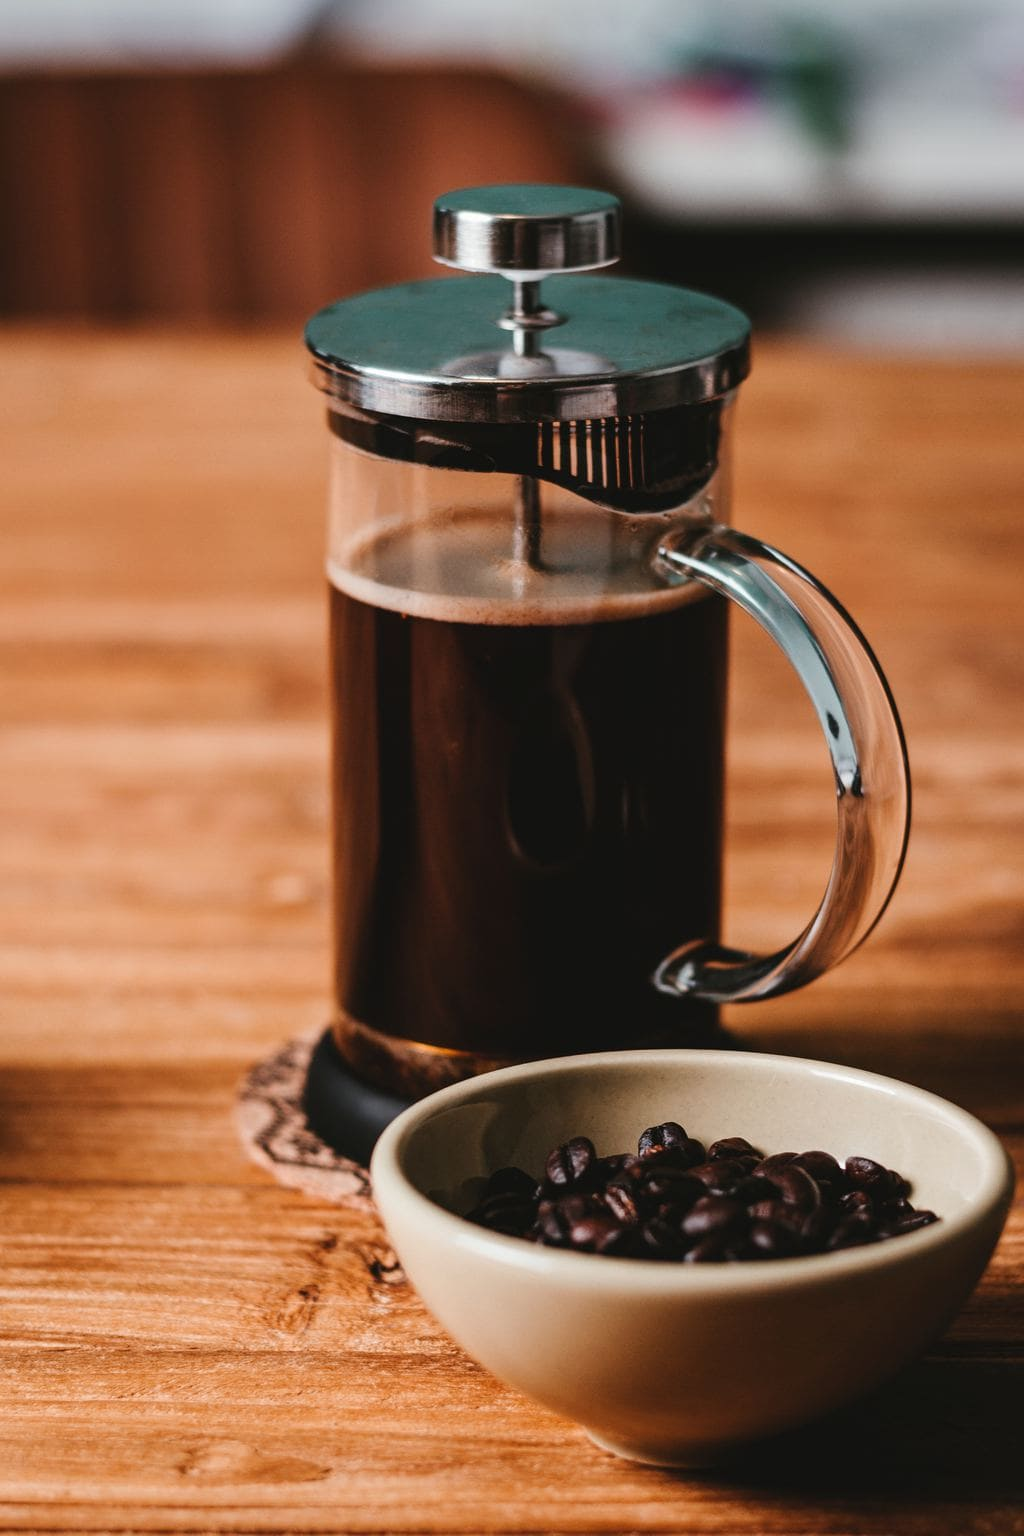 Best Coffee Grinder For French Press: Roasty's 2020 Reviews